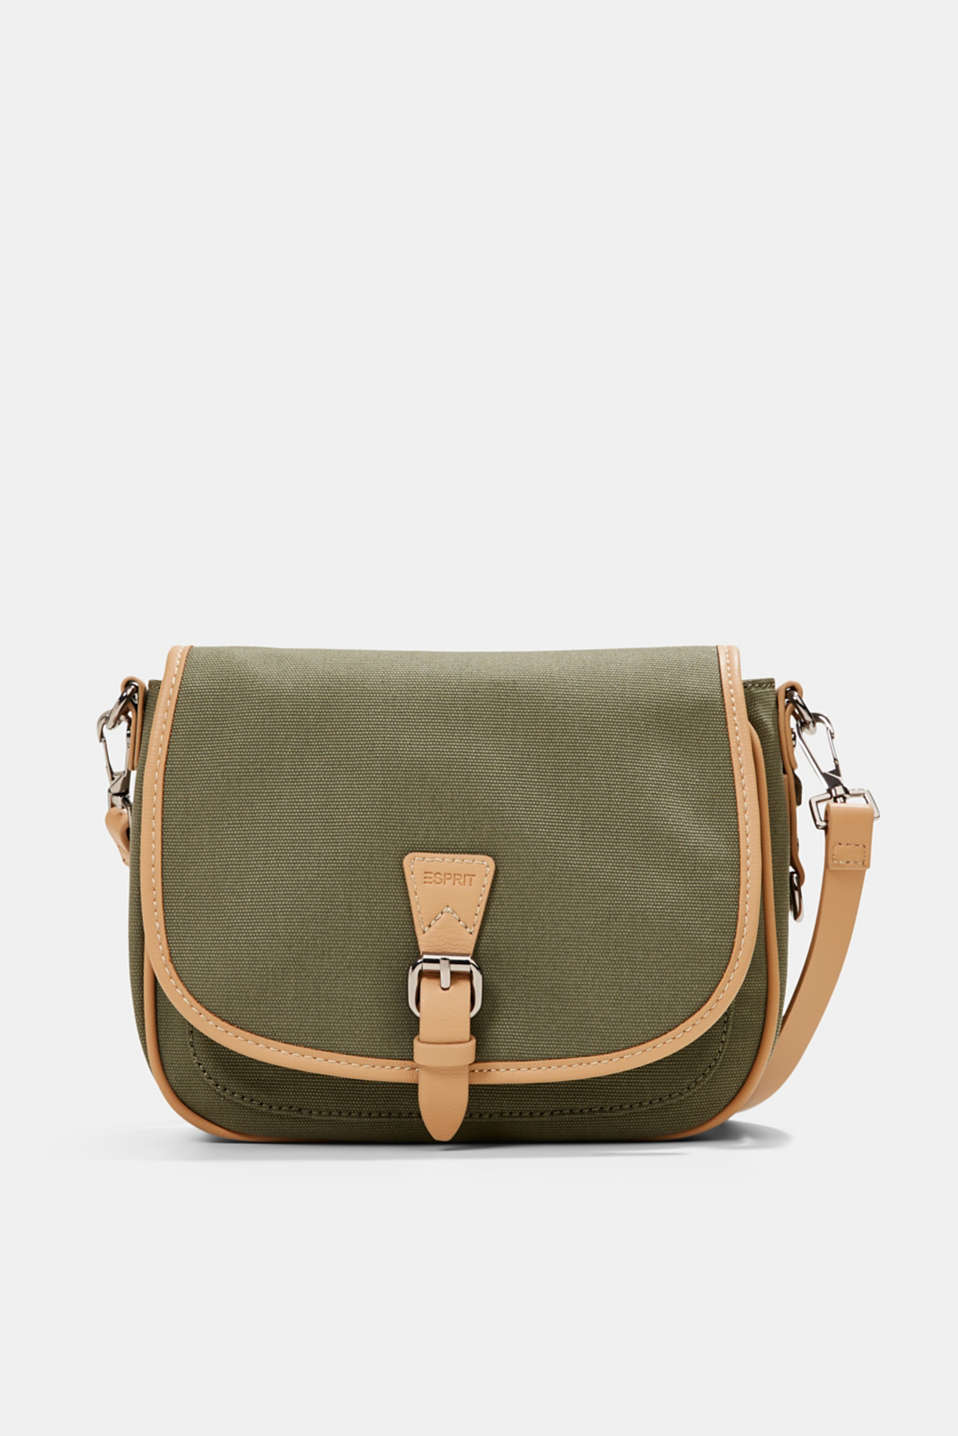 Esprit - shoulder bag